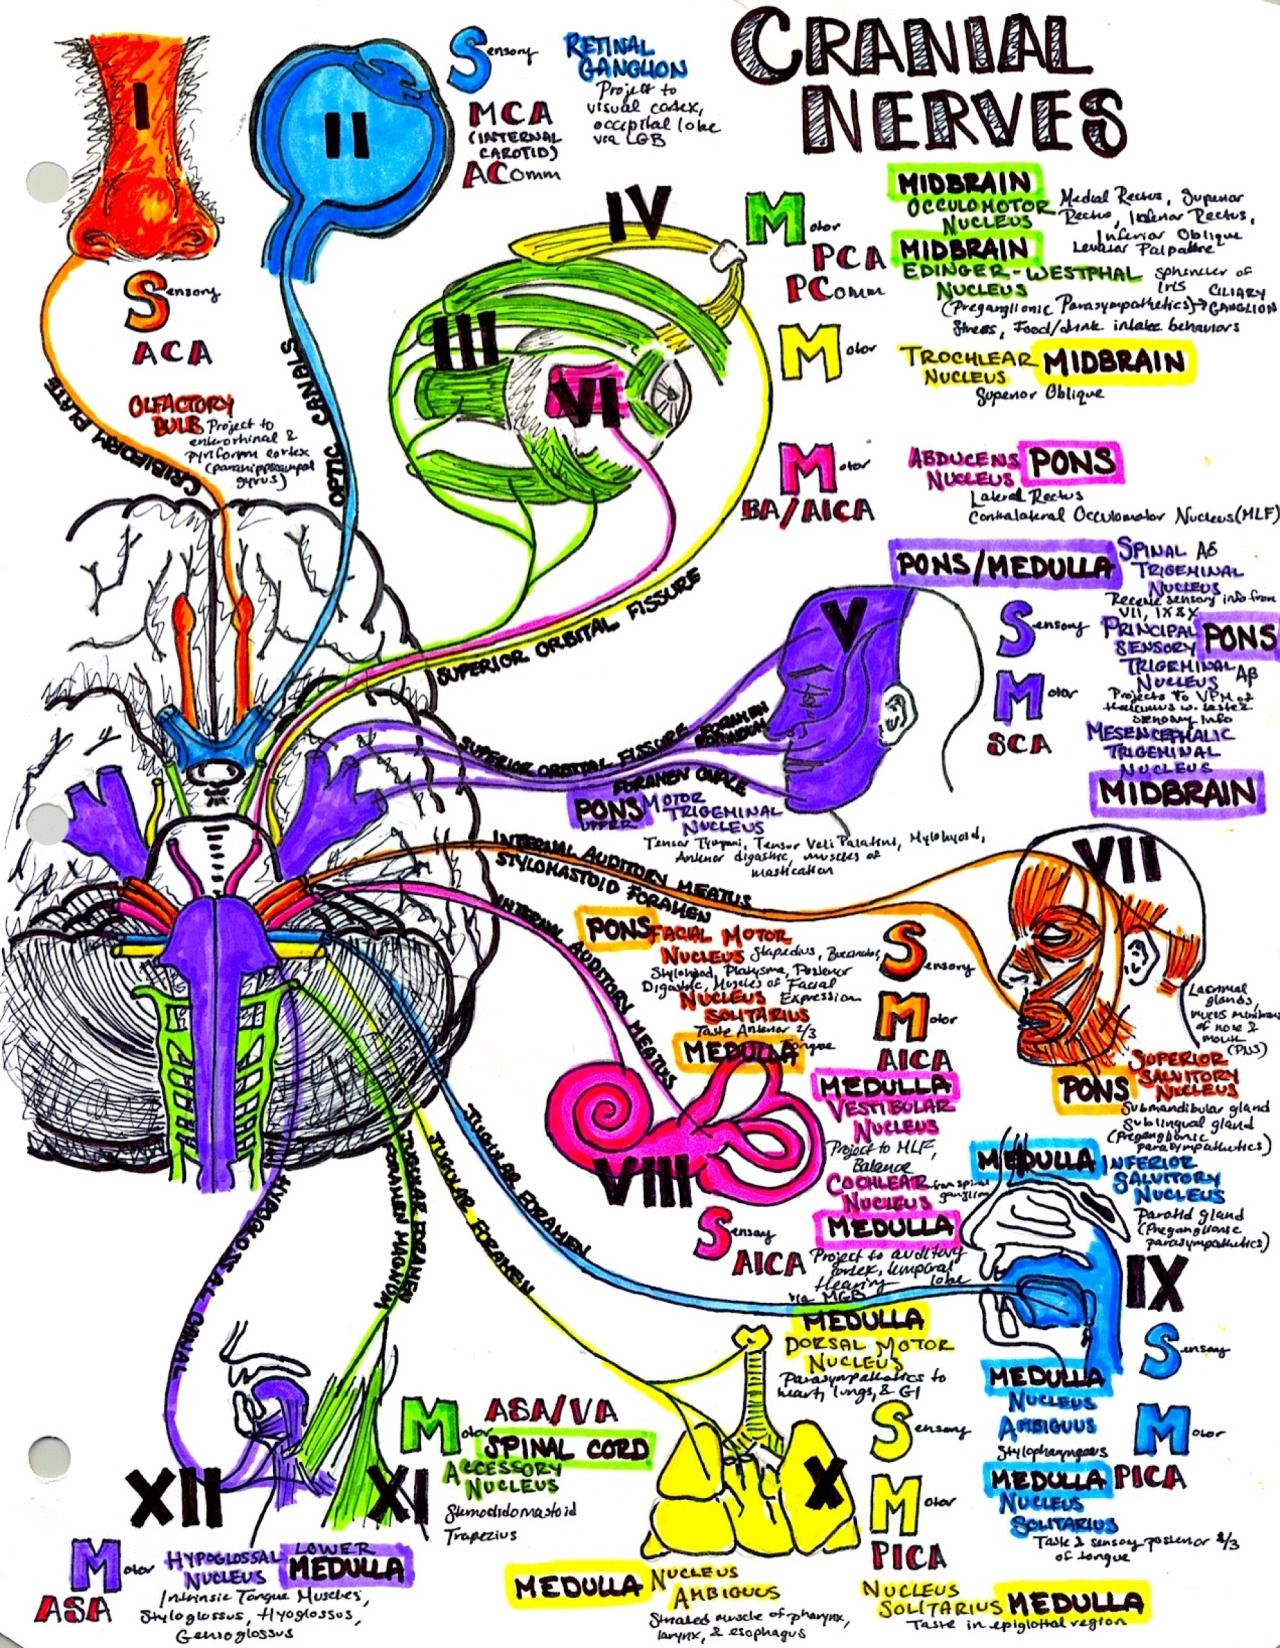 Cranial nerves! | art and photography | Pinterest | Cranial nerves ...